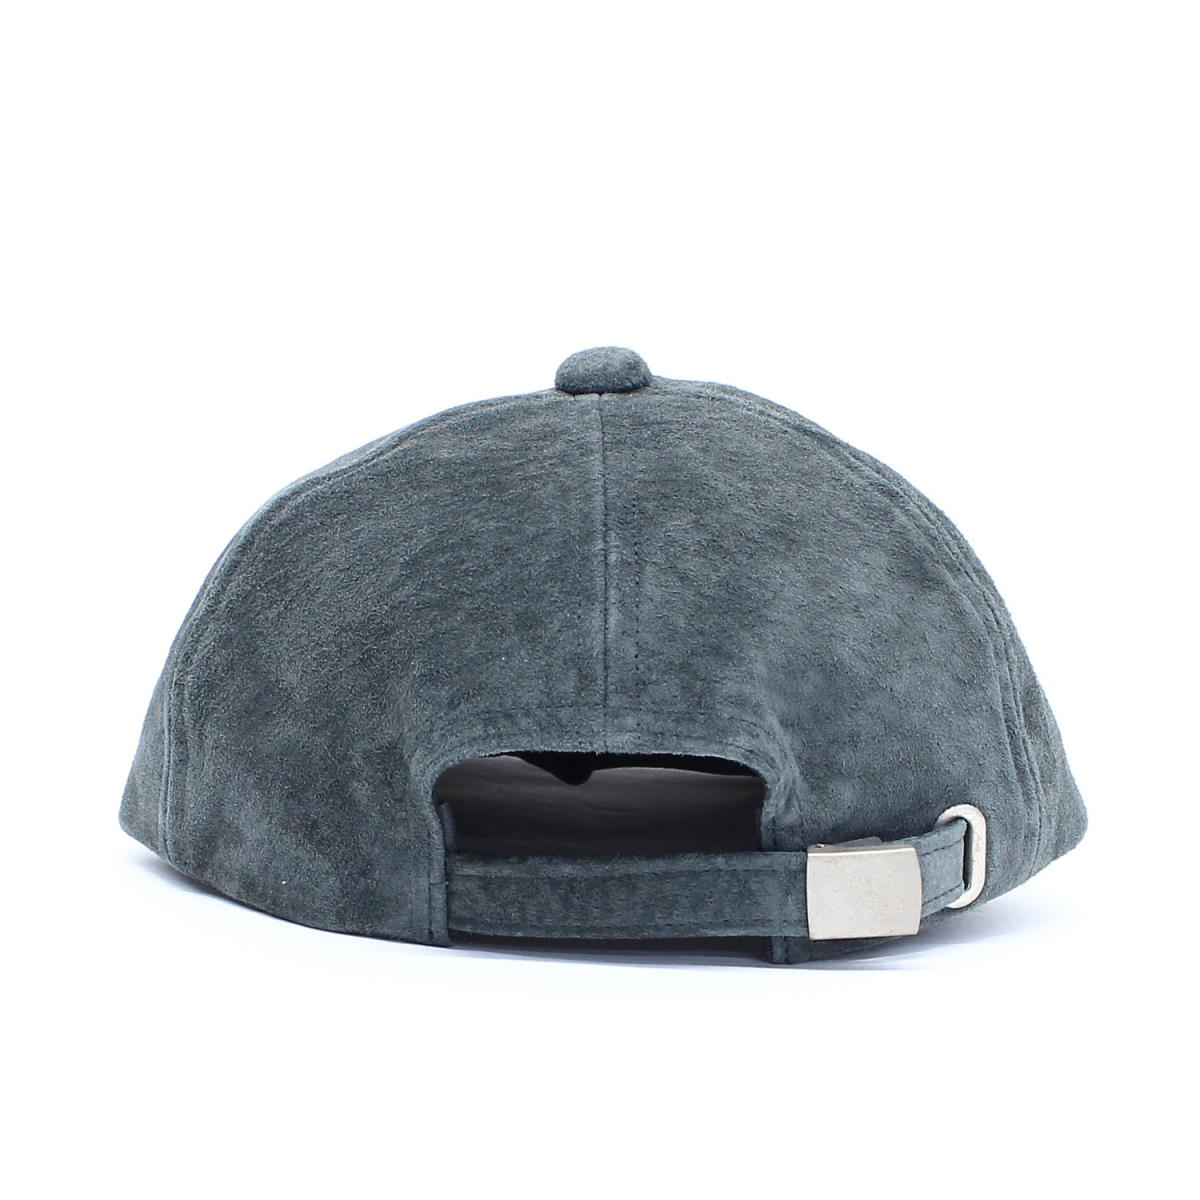 BEEGLE by Boo-Bee  YOUNG  amp  OLSEN (young people and Olsen) 18A W PIG SUEDE  BB CAP suede cloth cap charcoal gray  6dff1f4d65e0